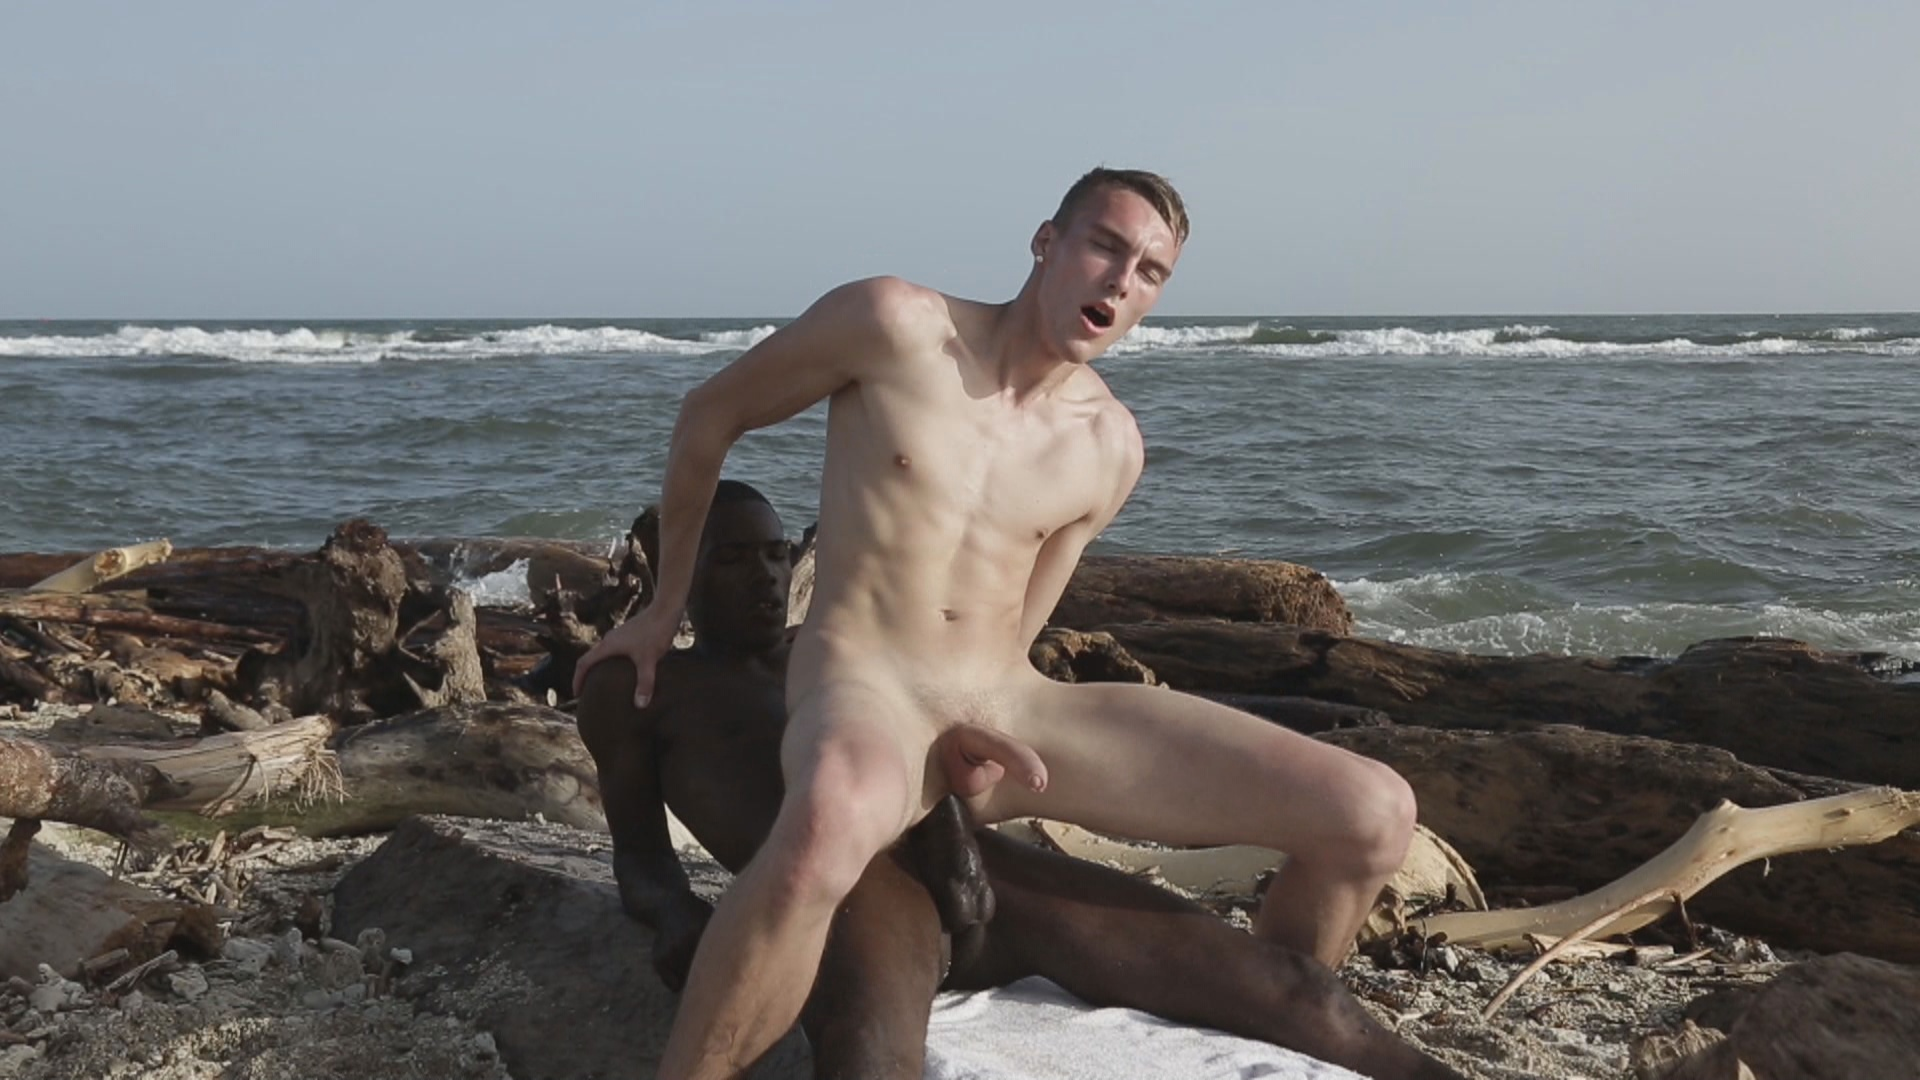 Monster Cock Island 2 Xvideo gay